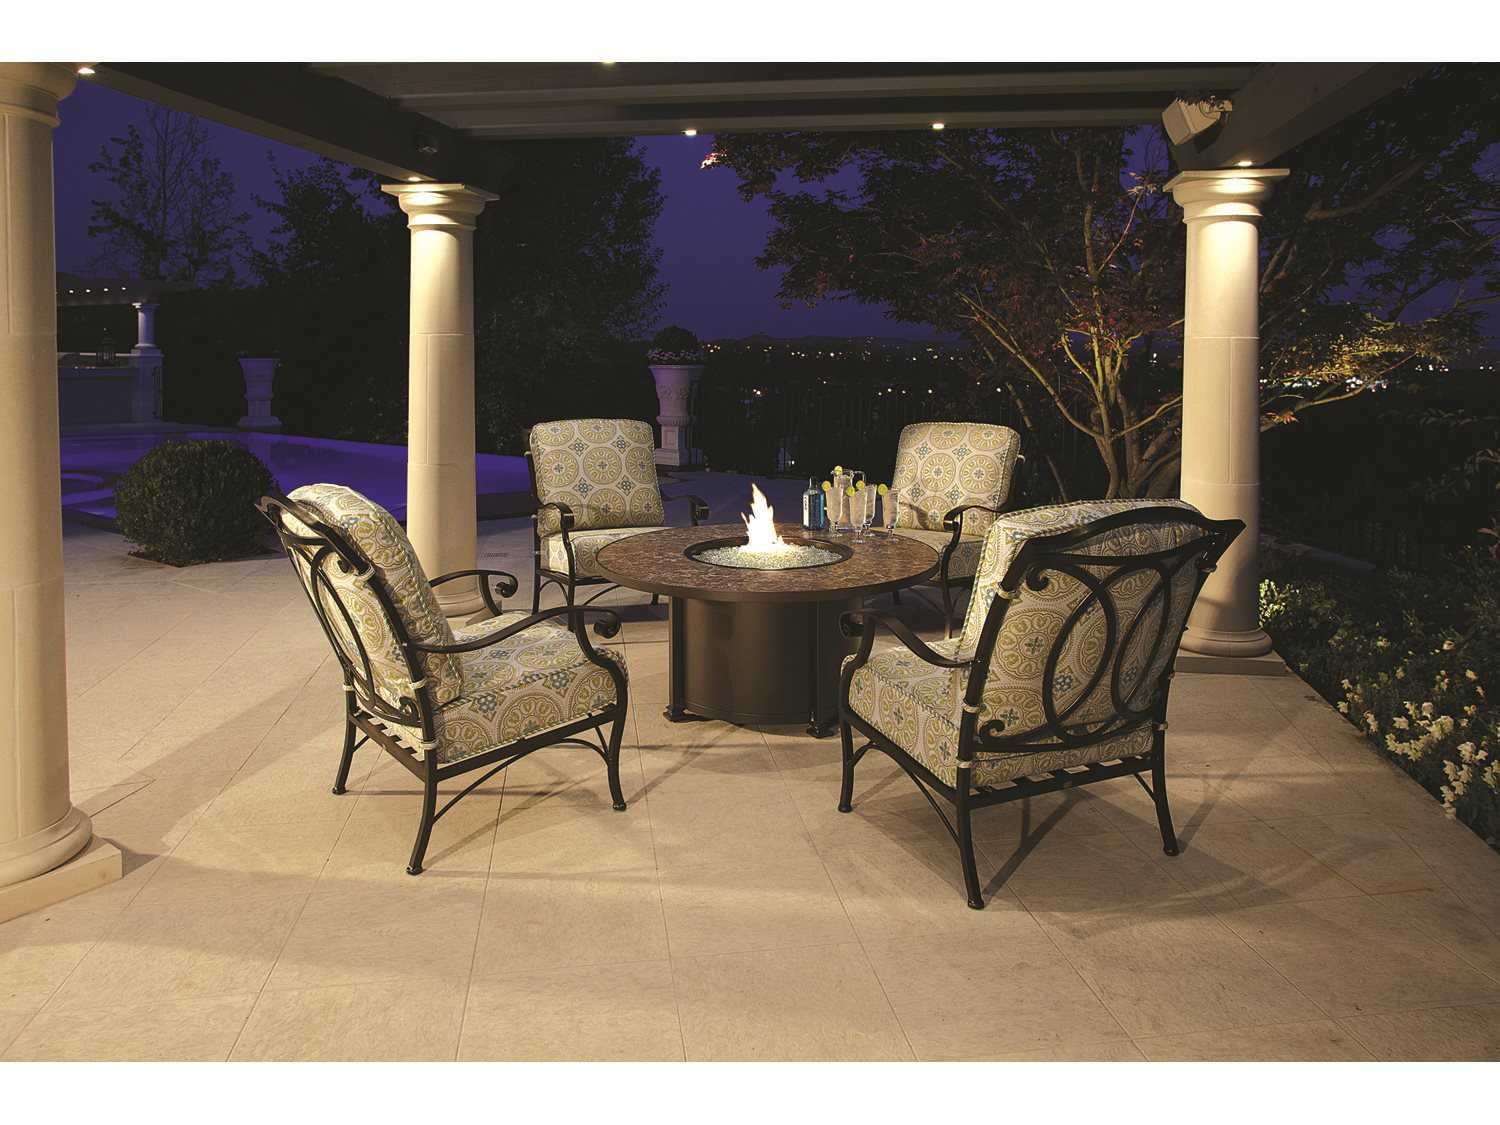 Ow Lee Casual Fireside Santorini Wrought Iron 54 Round